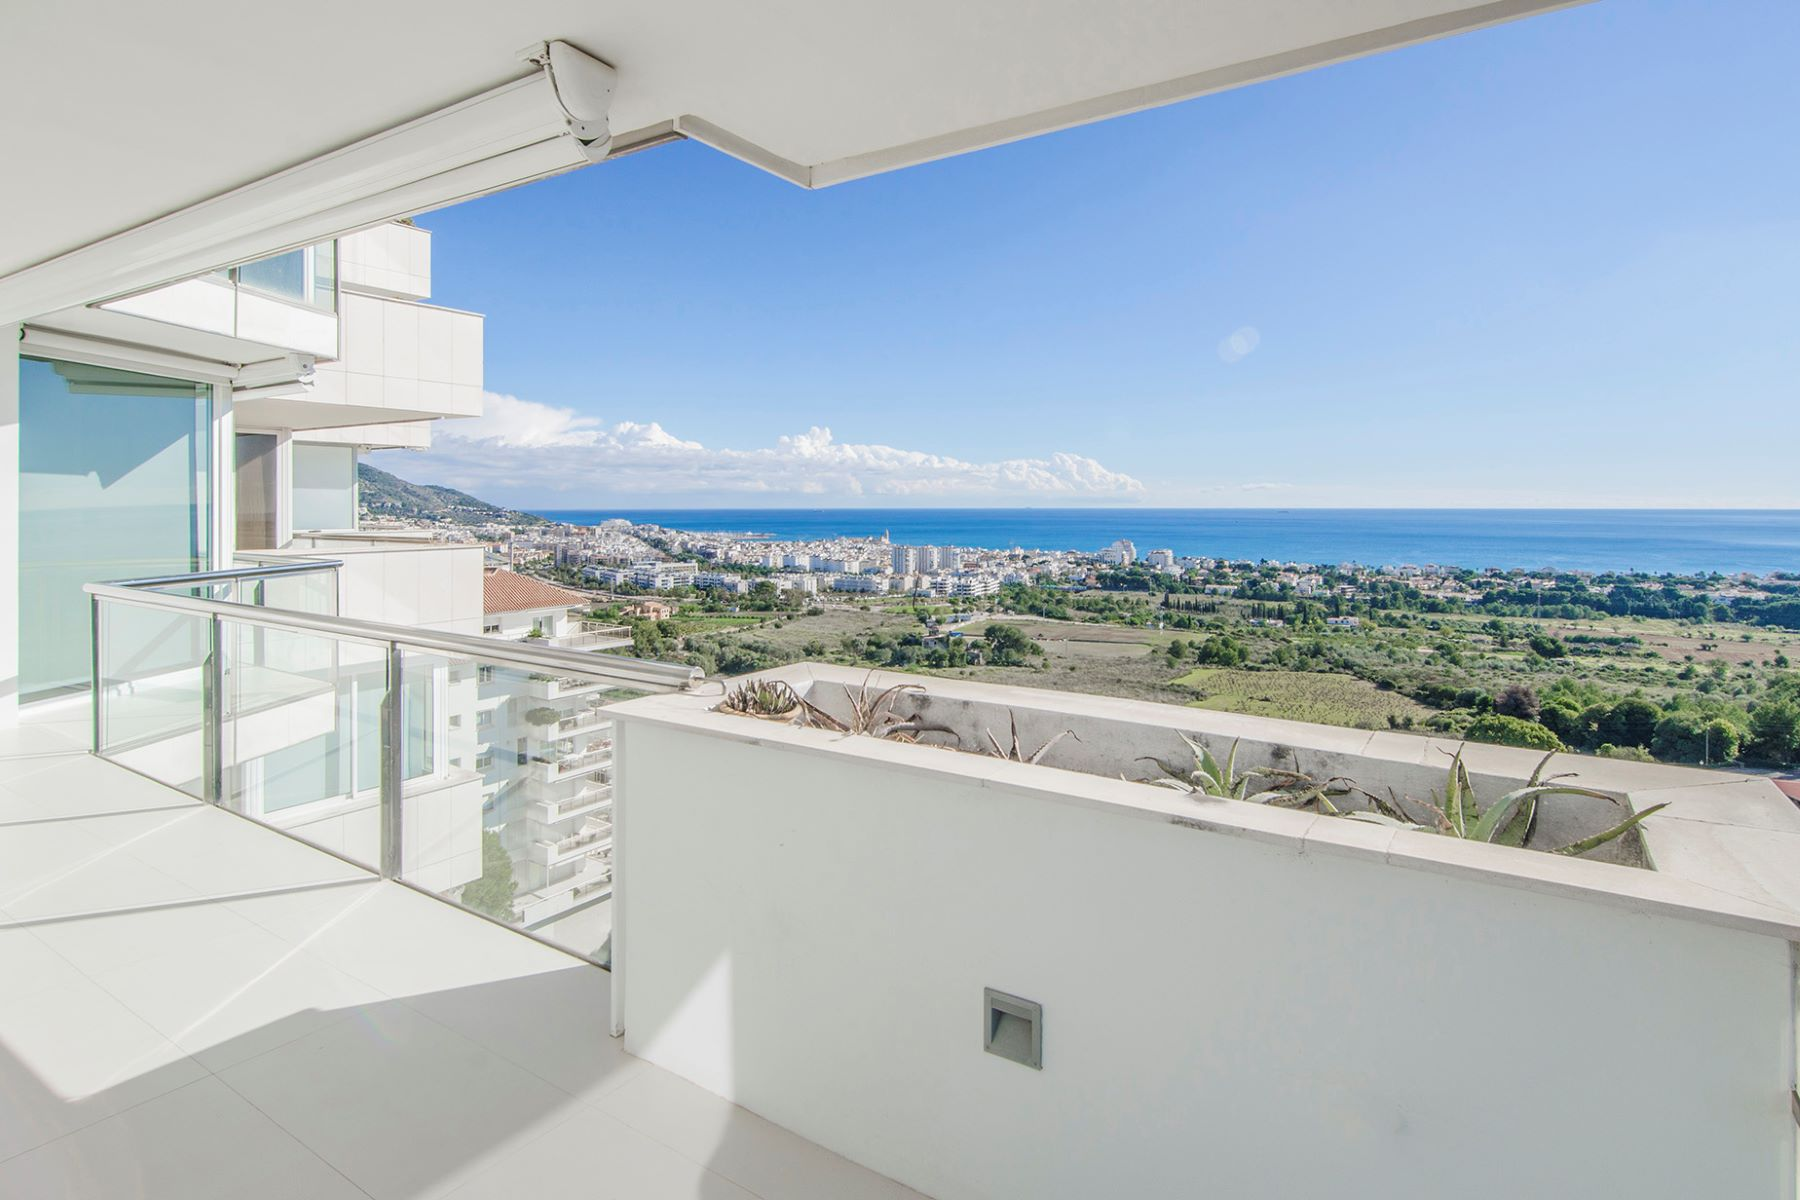 아파트 용 매매 에 Stunning Apartment with Views to Sitges Sitges, Barcelona, 08870 스페인